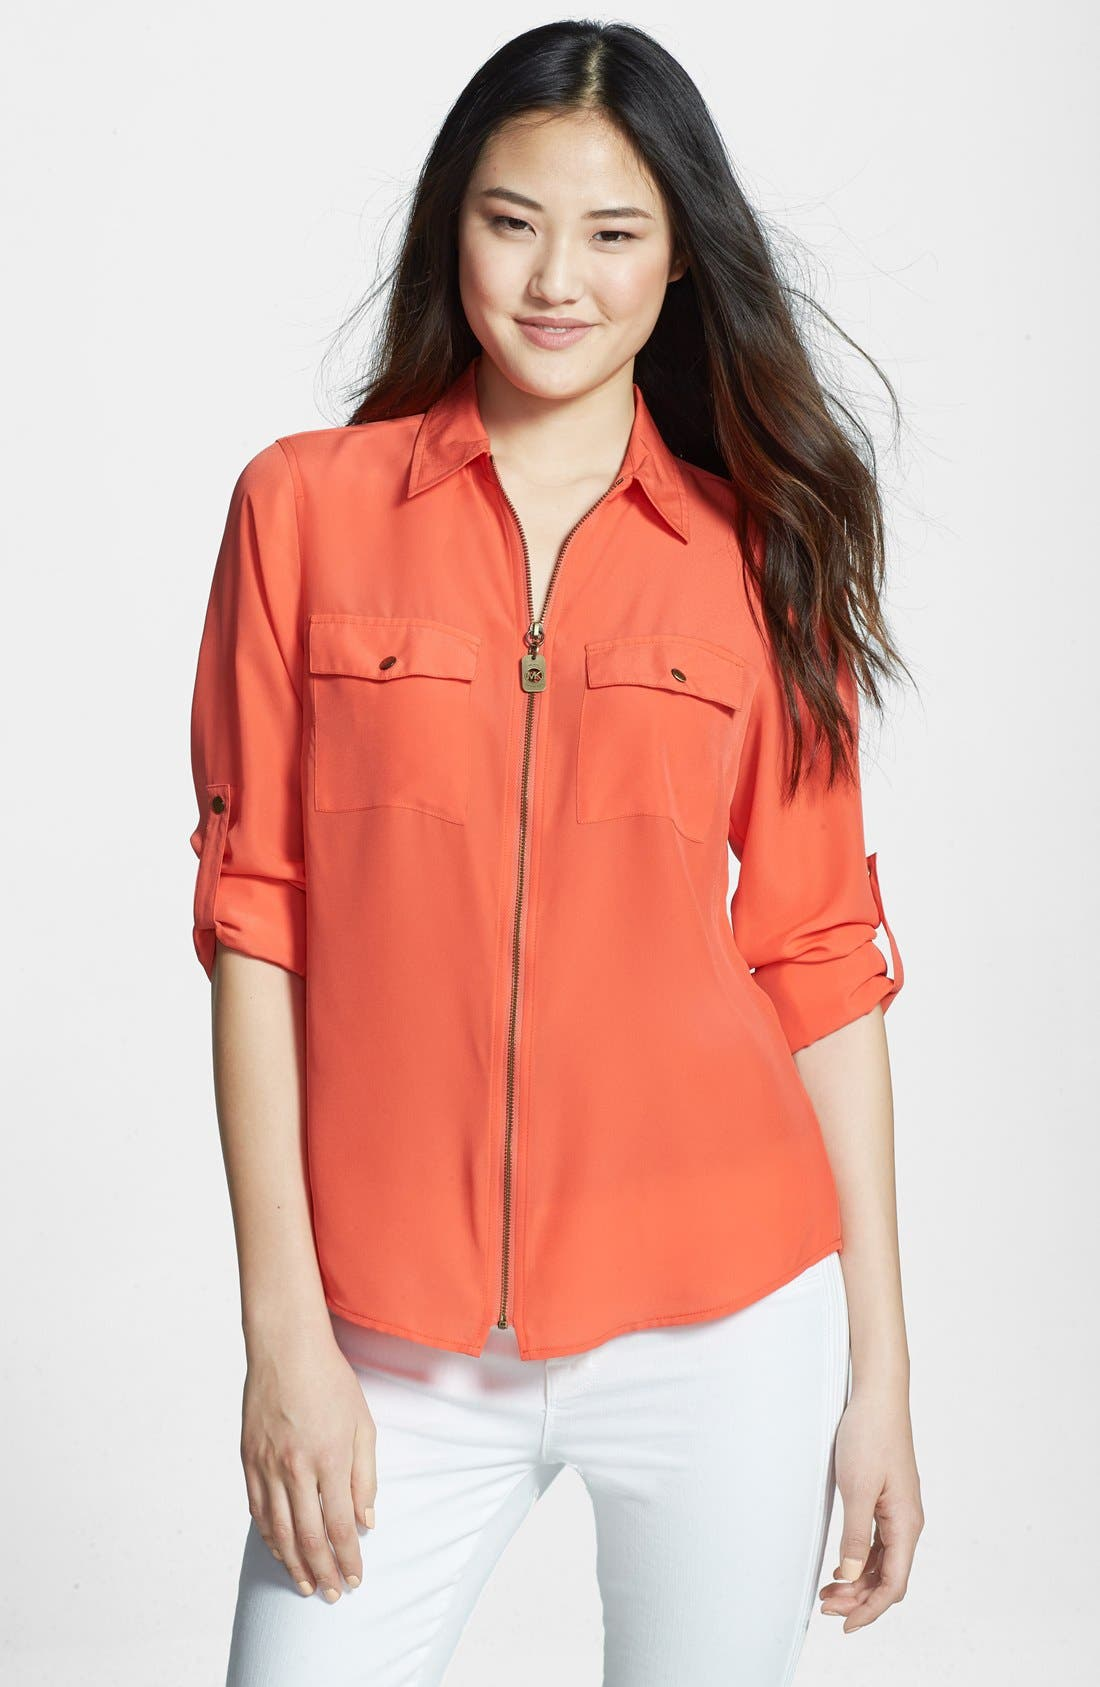 Alternate Image 1 Selected - MICHAEL Michael Kors Zip Safari Shirt (Regular & Petite)